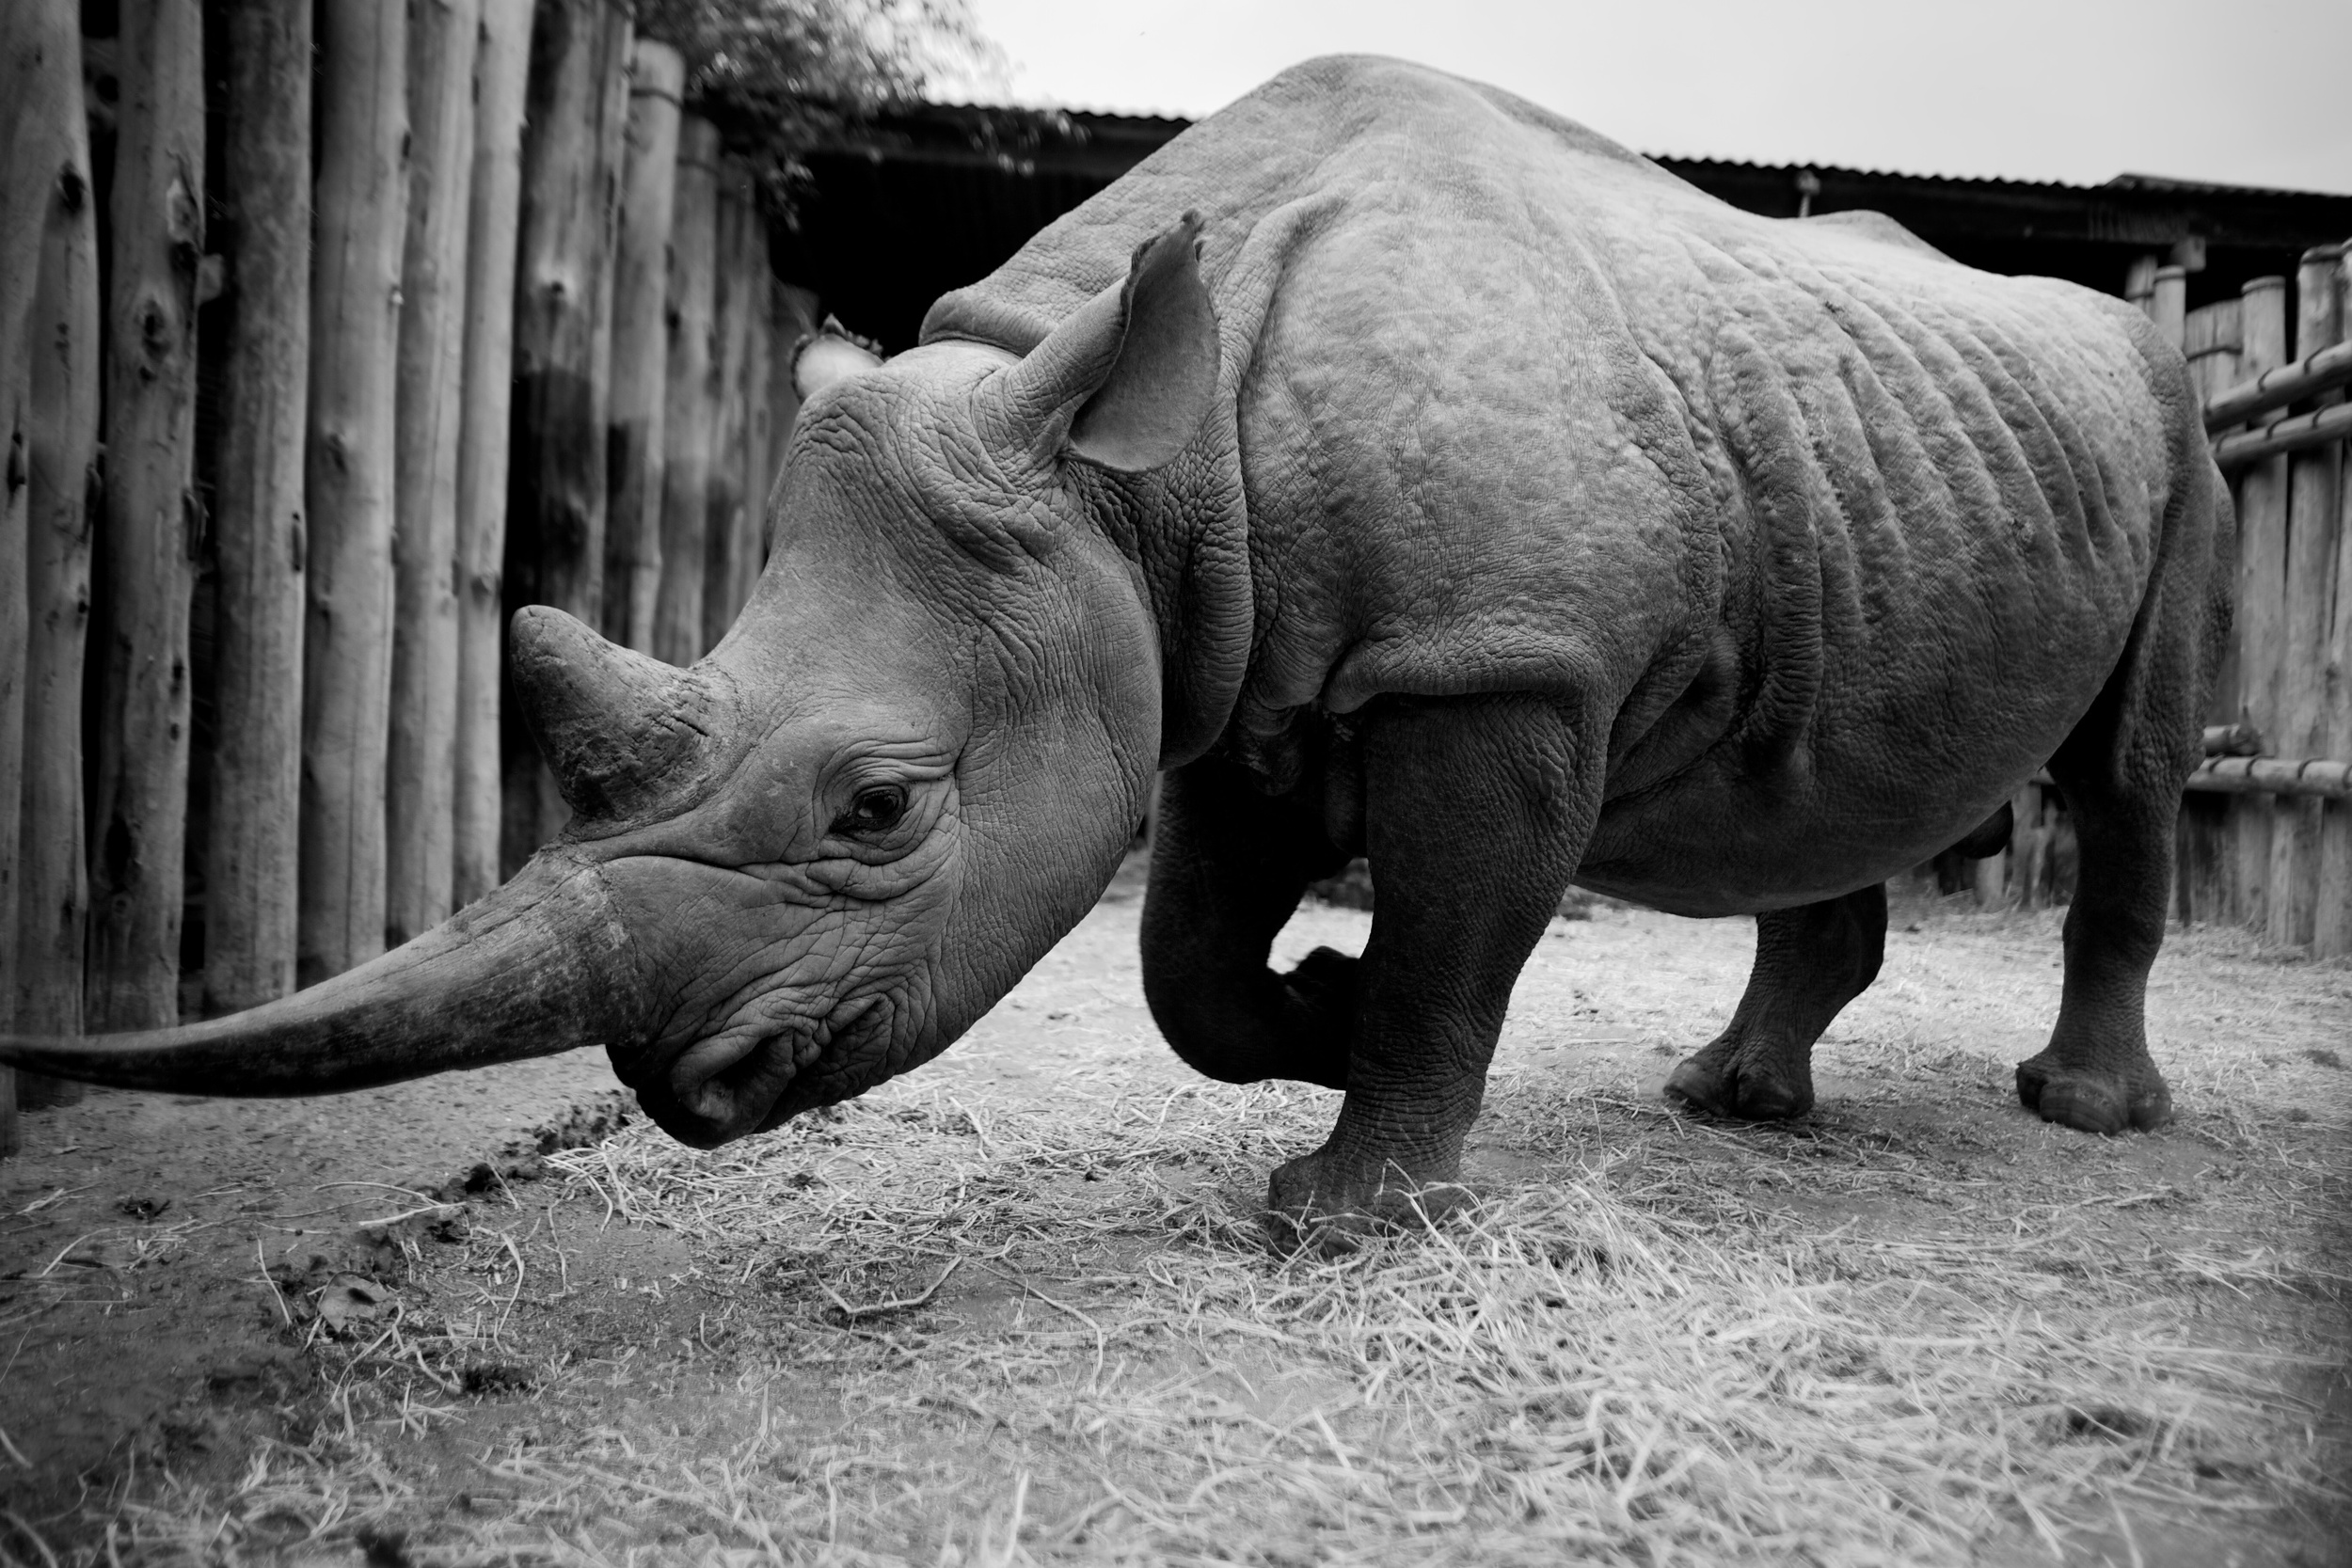 Solio, a female black rhino, rests in her pen atThe David Sheldrick Wildlife Trust outside of Nairobi, Kenya. Solio,named for the region where she was rescued, was orphaned by poachers asa six-month-old.In 1970, at least20,000 black rhinos lived in Kenya. Today, poaching and environmental pressures have cut the number down to 540.